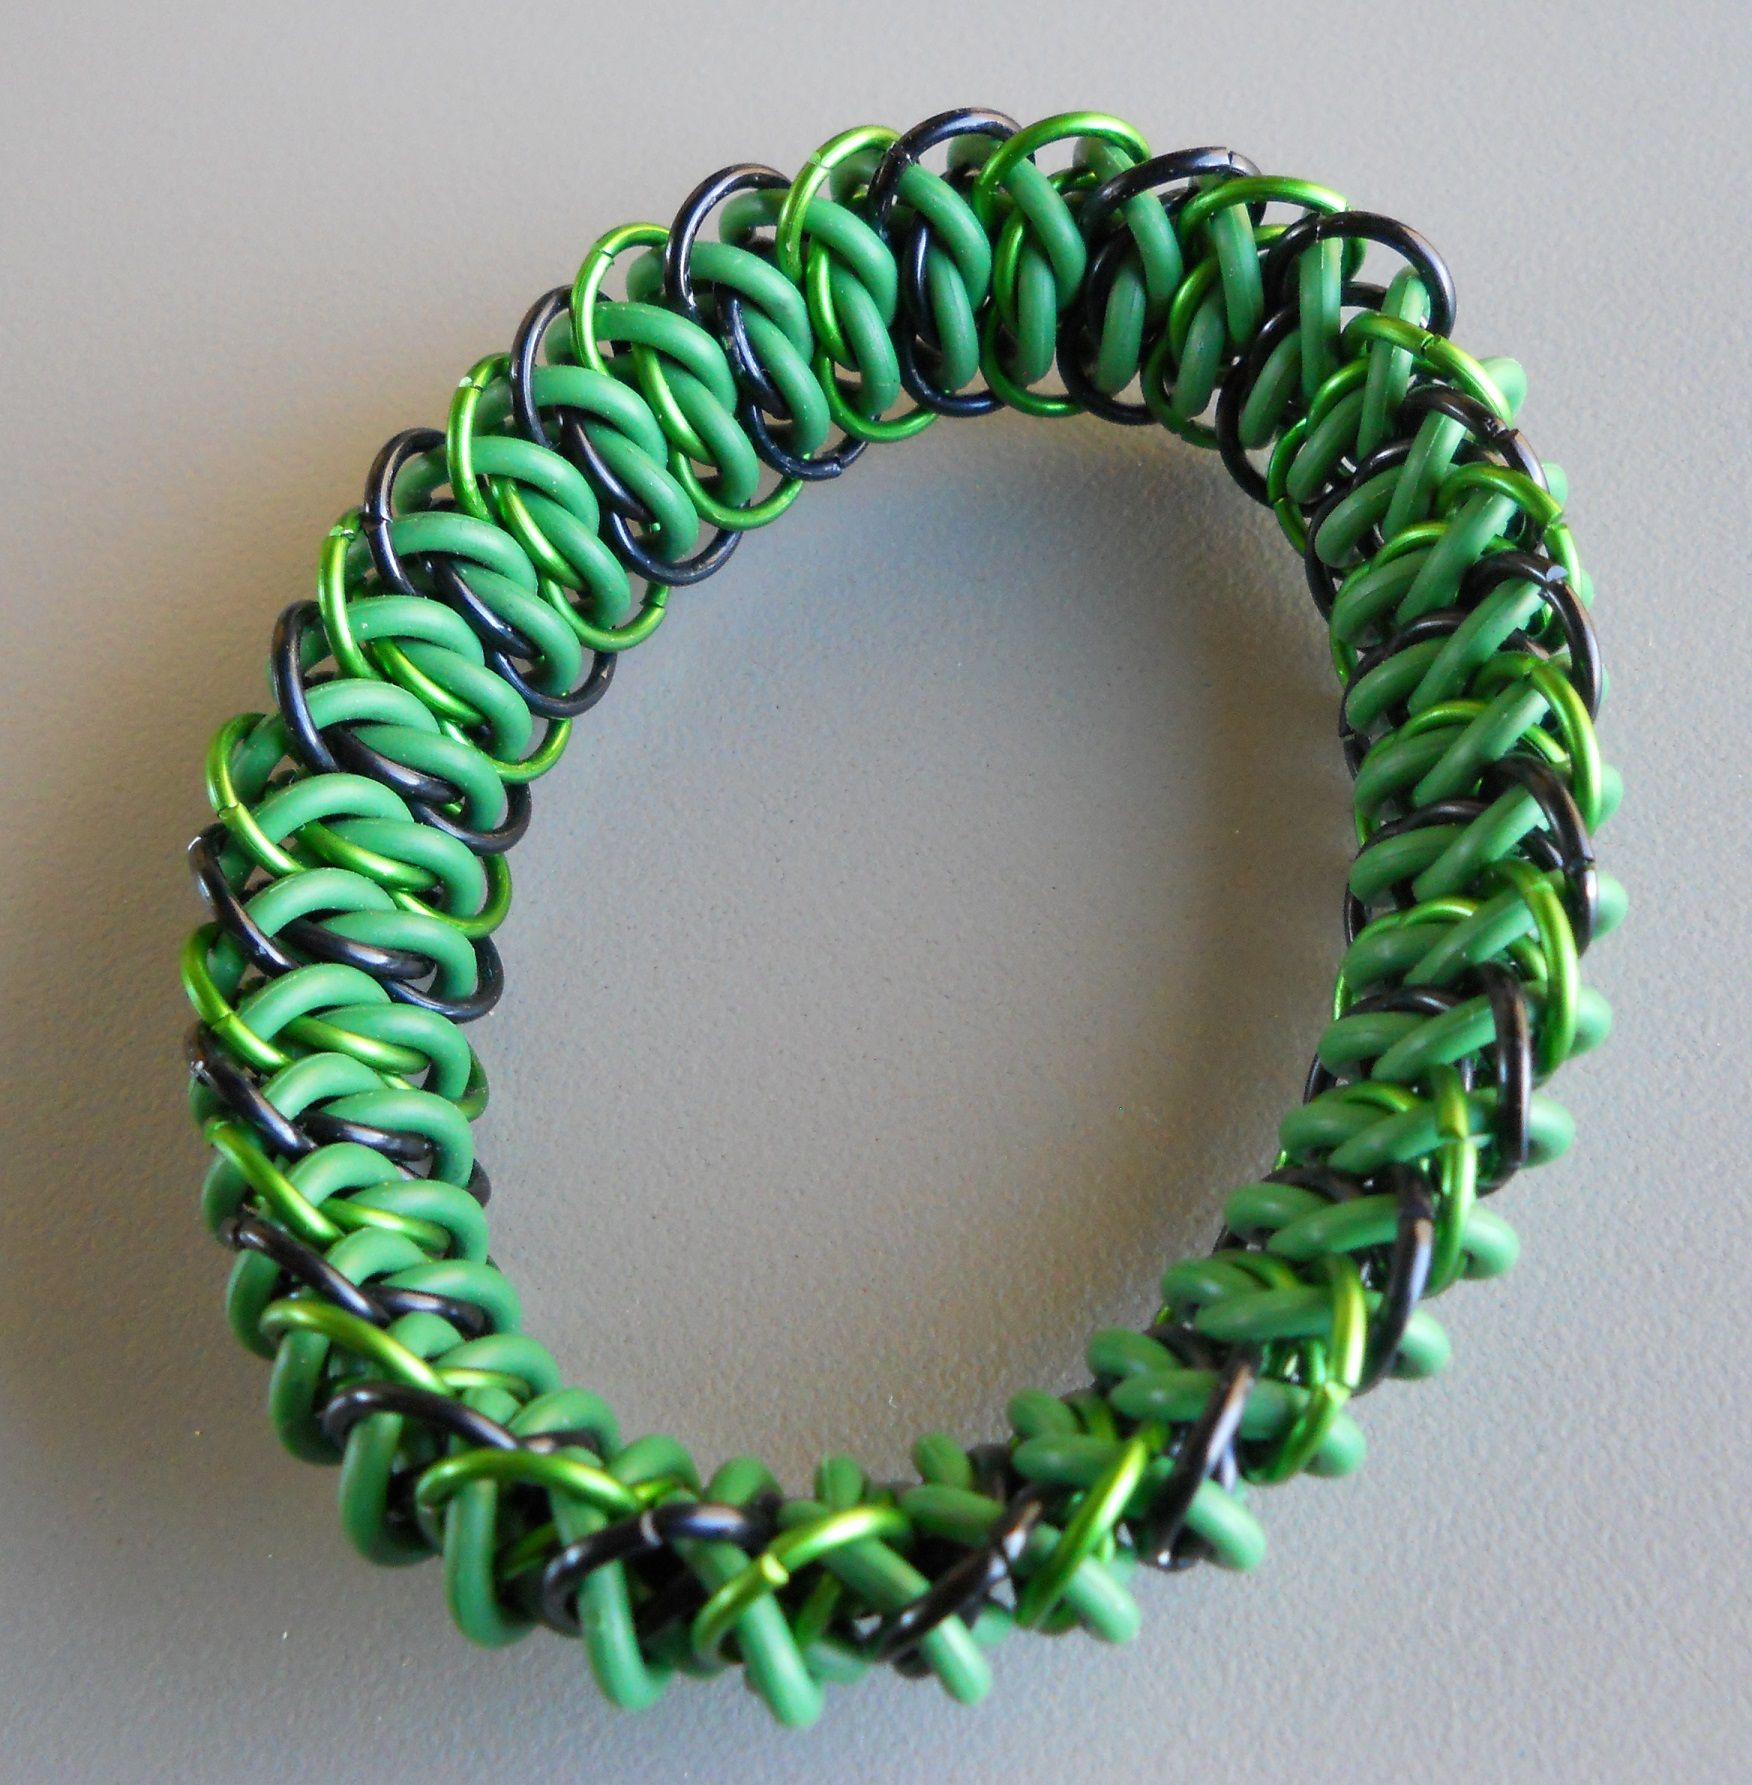 228. Green EPDM rubber rings with green and black anodized aluminum Viperscale pattern stretch bracelet. $25